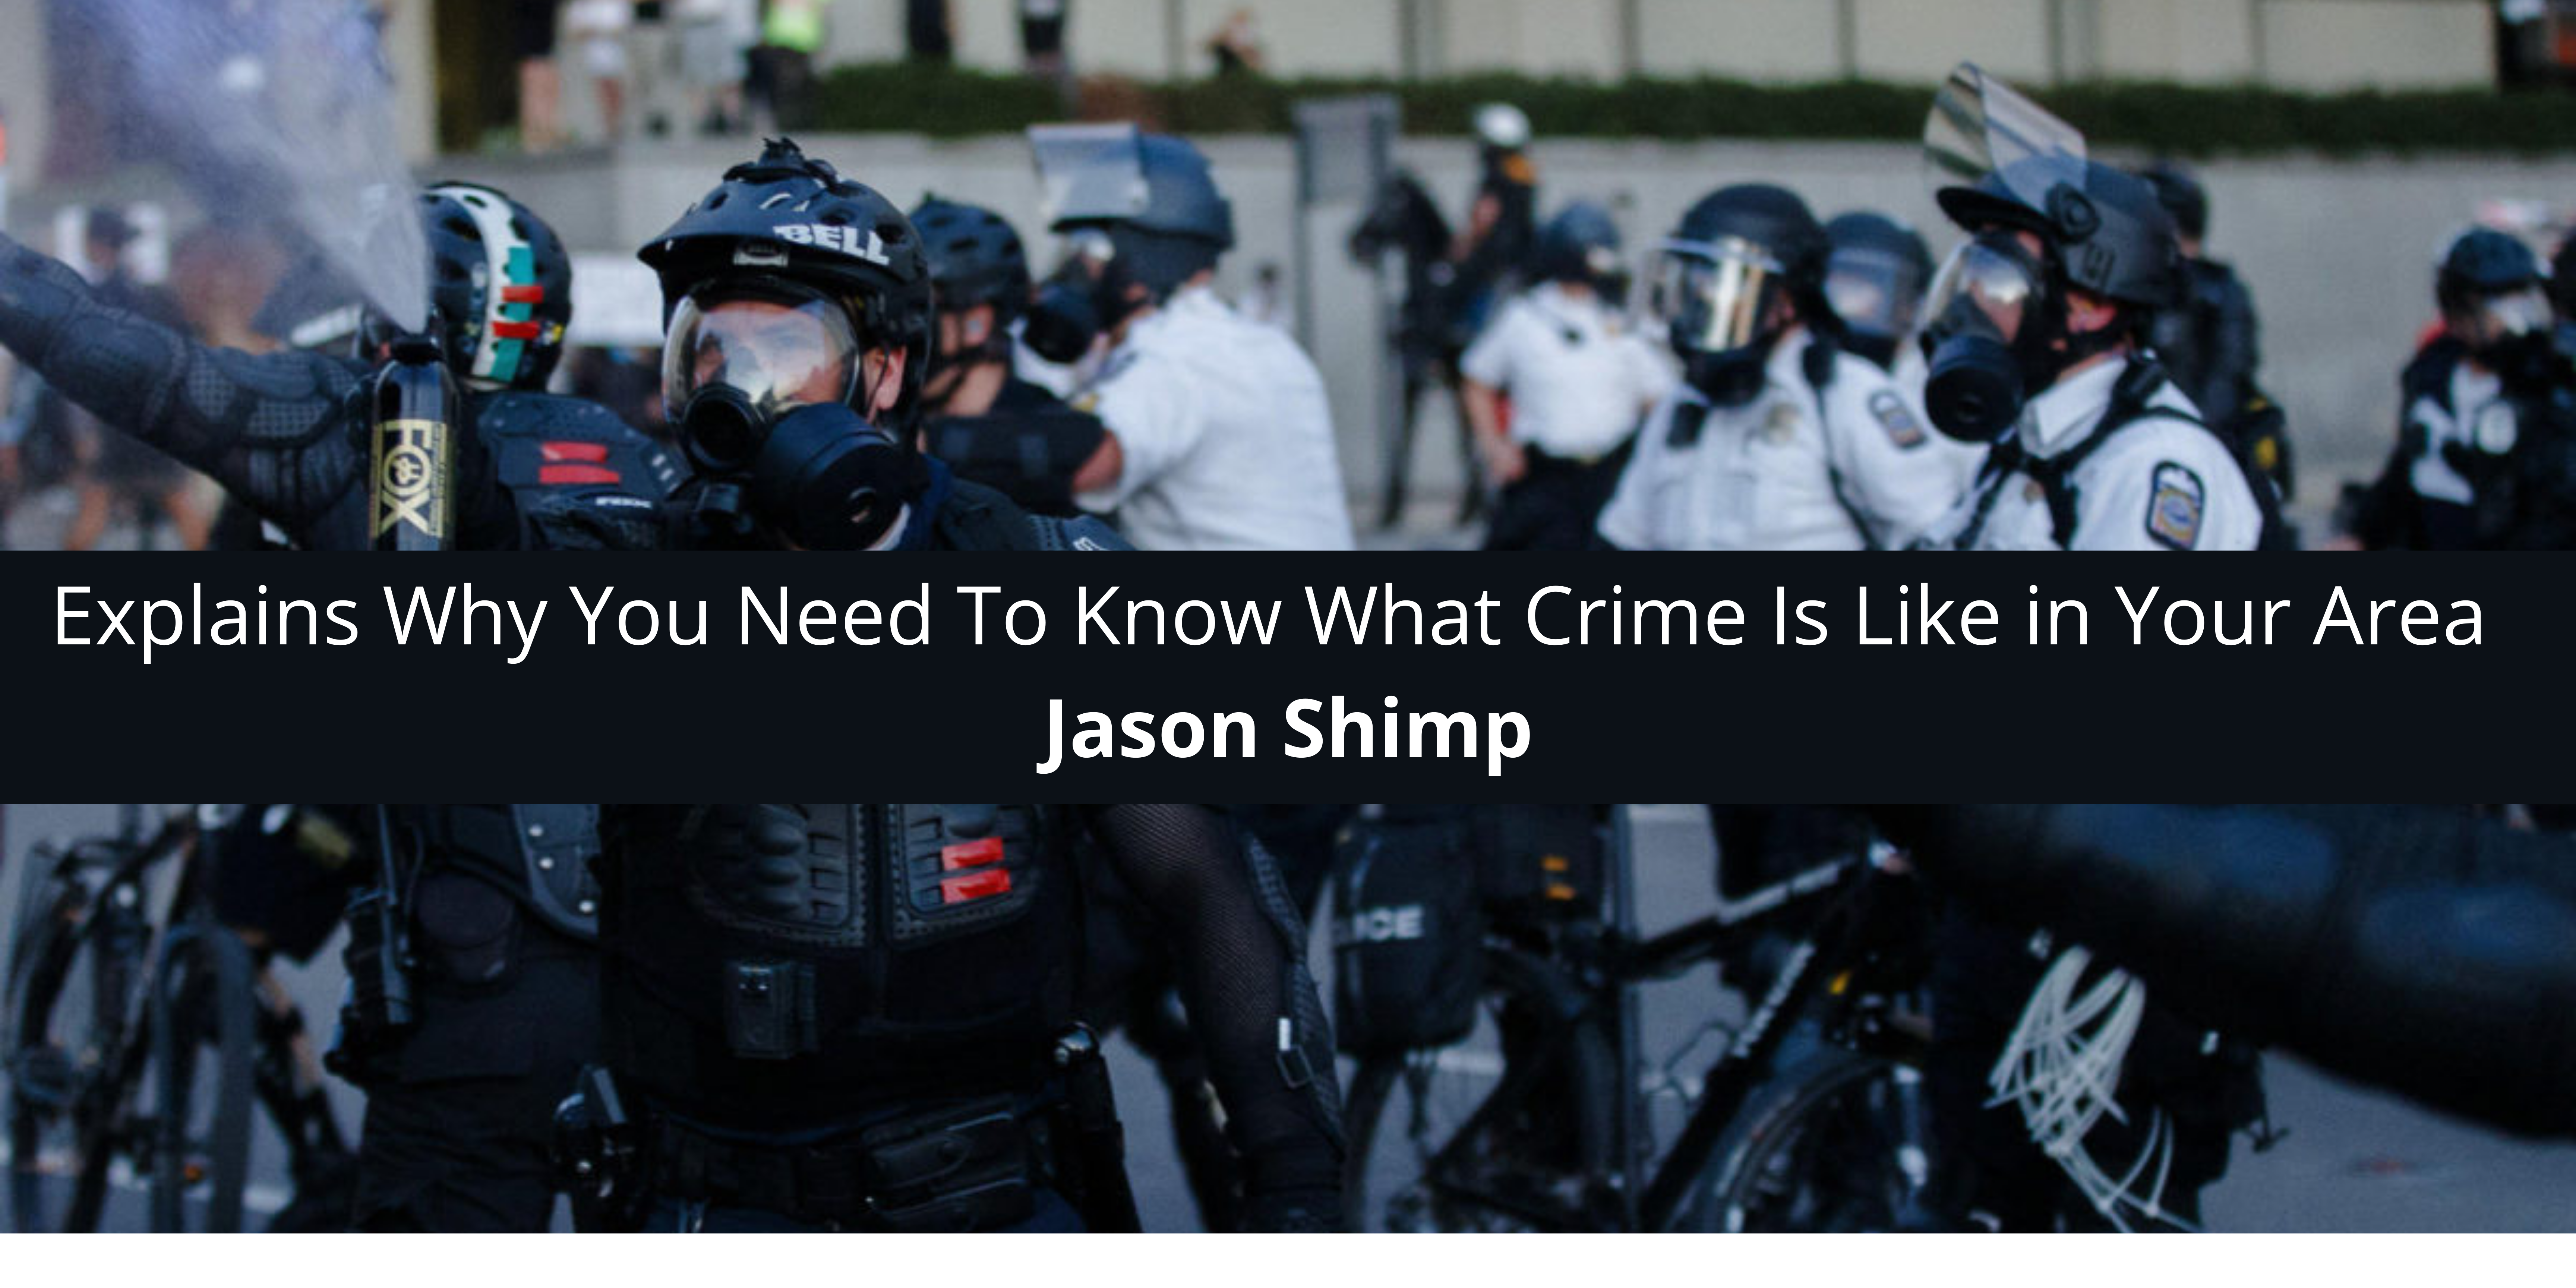 Jason-Shimp-Explains-Why-You-Need-To-Know-What-Crime-Is-Like-in-Your-Area